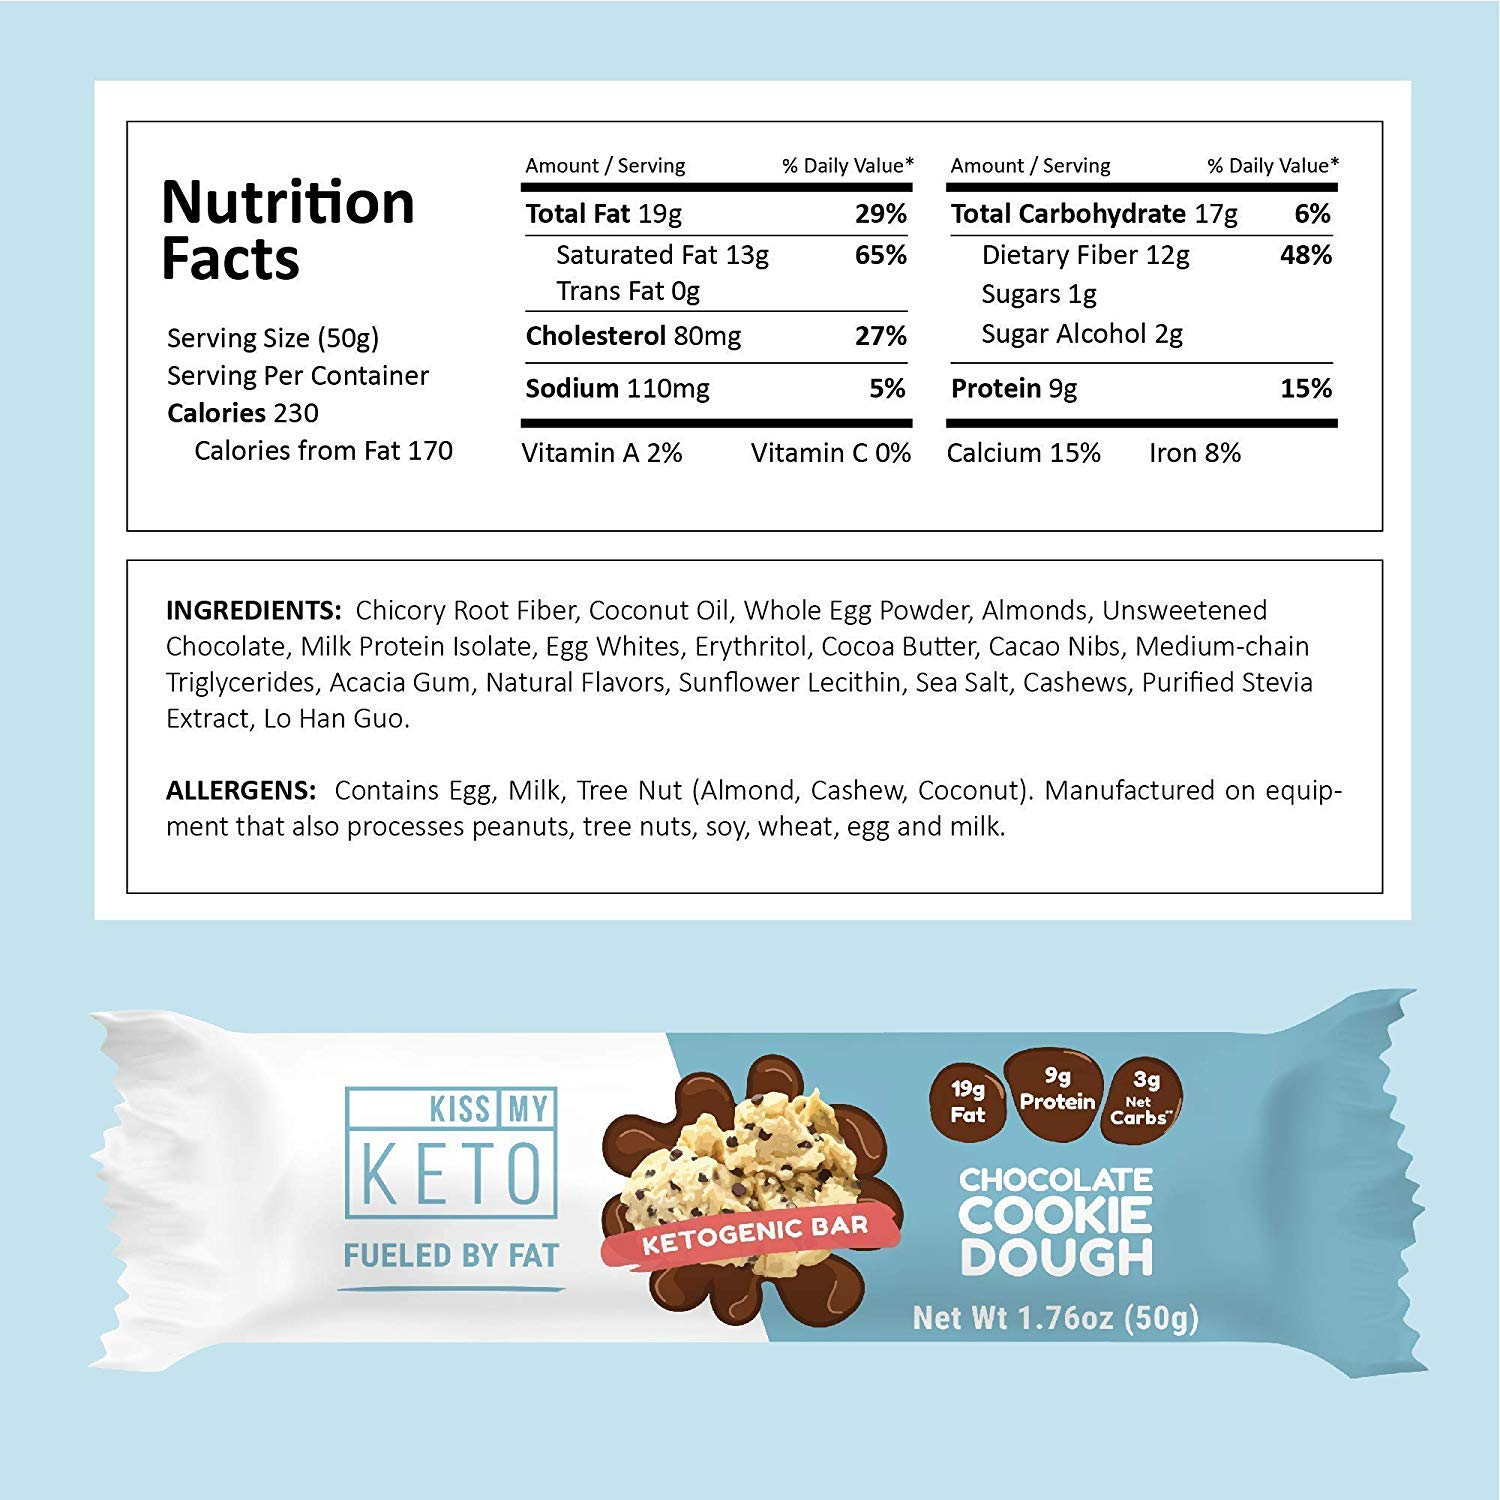 Kiss My Keto Snacks Keto Bars - Keto Chocolate Variety Pack (12) Nutritional Keto Food Bars, Paleo, Low Carb/Glycemic Keto Friendly Foods, Natural On-The-Go Snacks, Quality Fat Bars 3g Net Carbs by Kiss My Keto (Image #4)